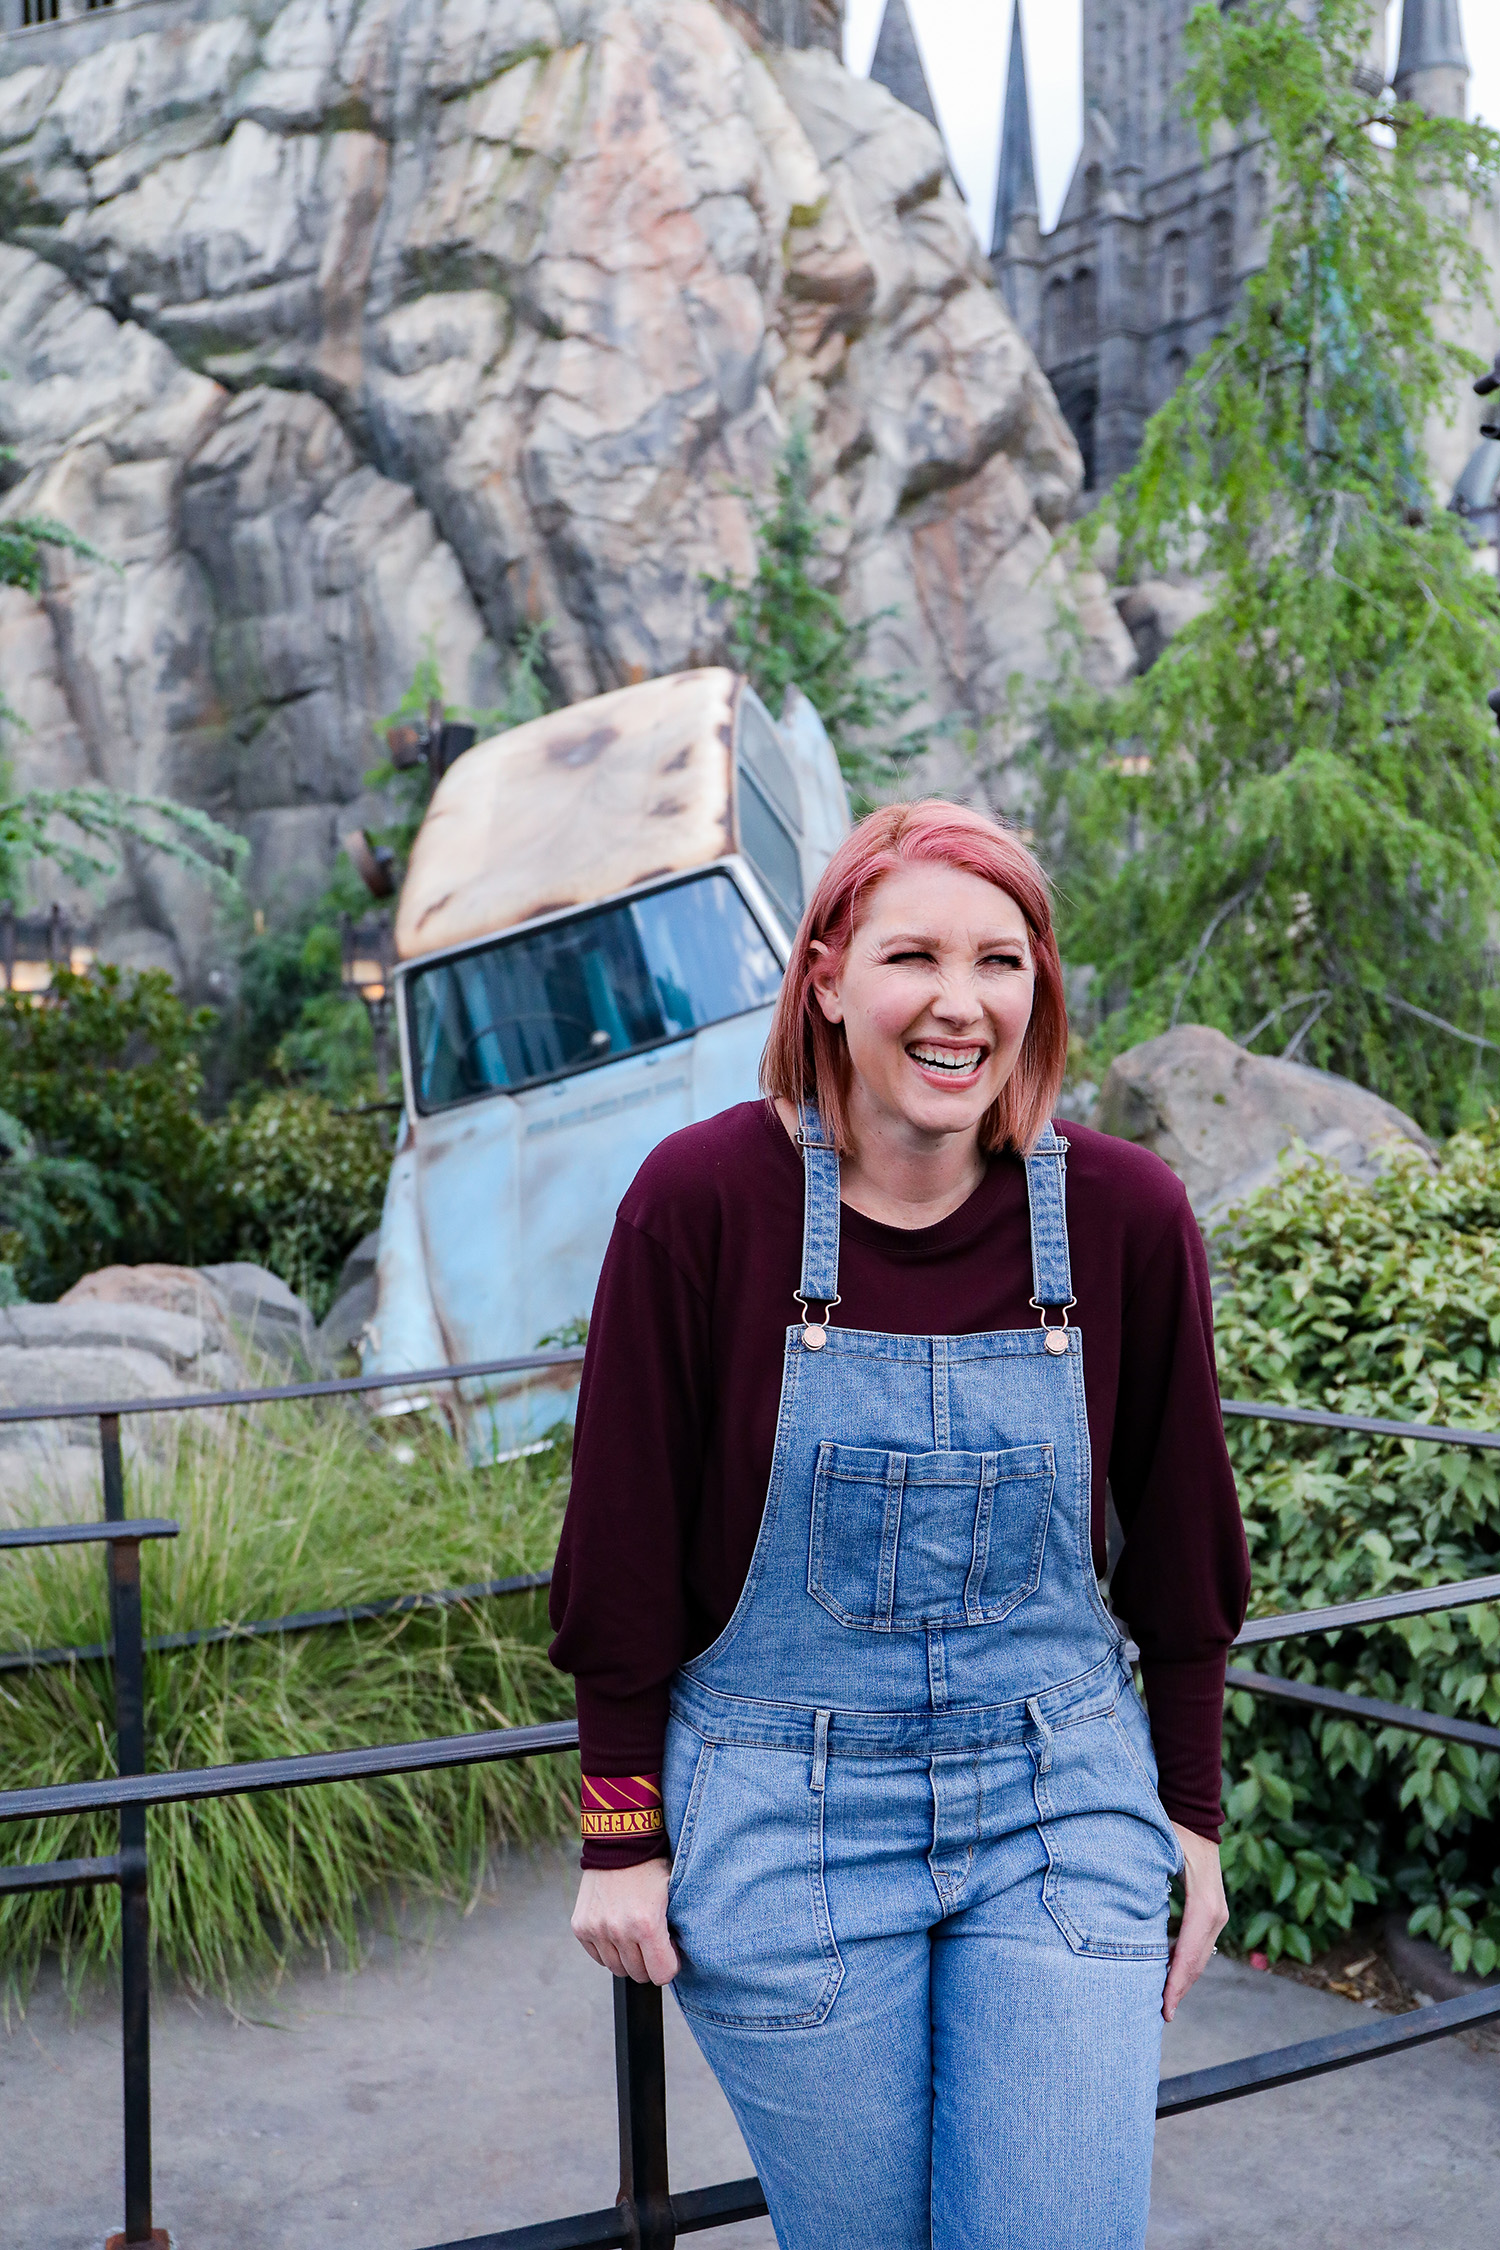 From Honeydukes to Hargrid's Hut, this is the ULTIMATE guide to taking pictures inside the Wizarding World of Harry Potter! Save it for your next trip to Harry Potter Land California!